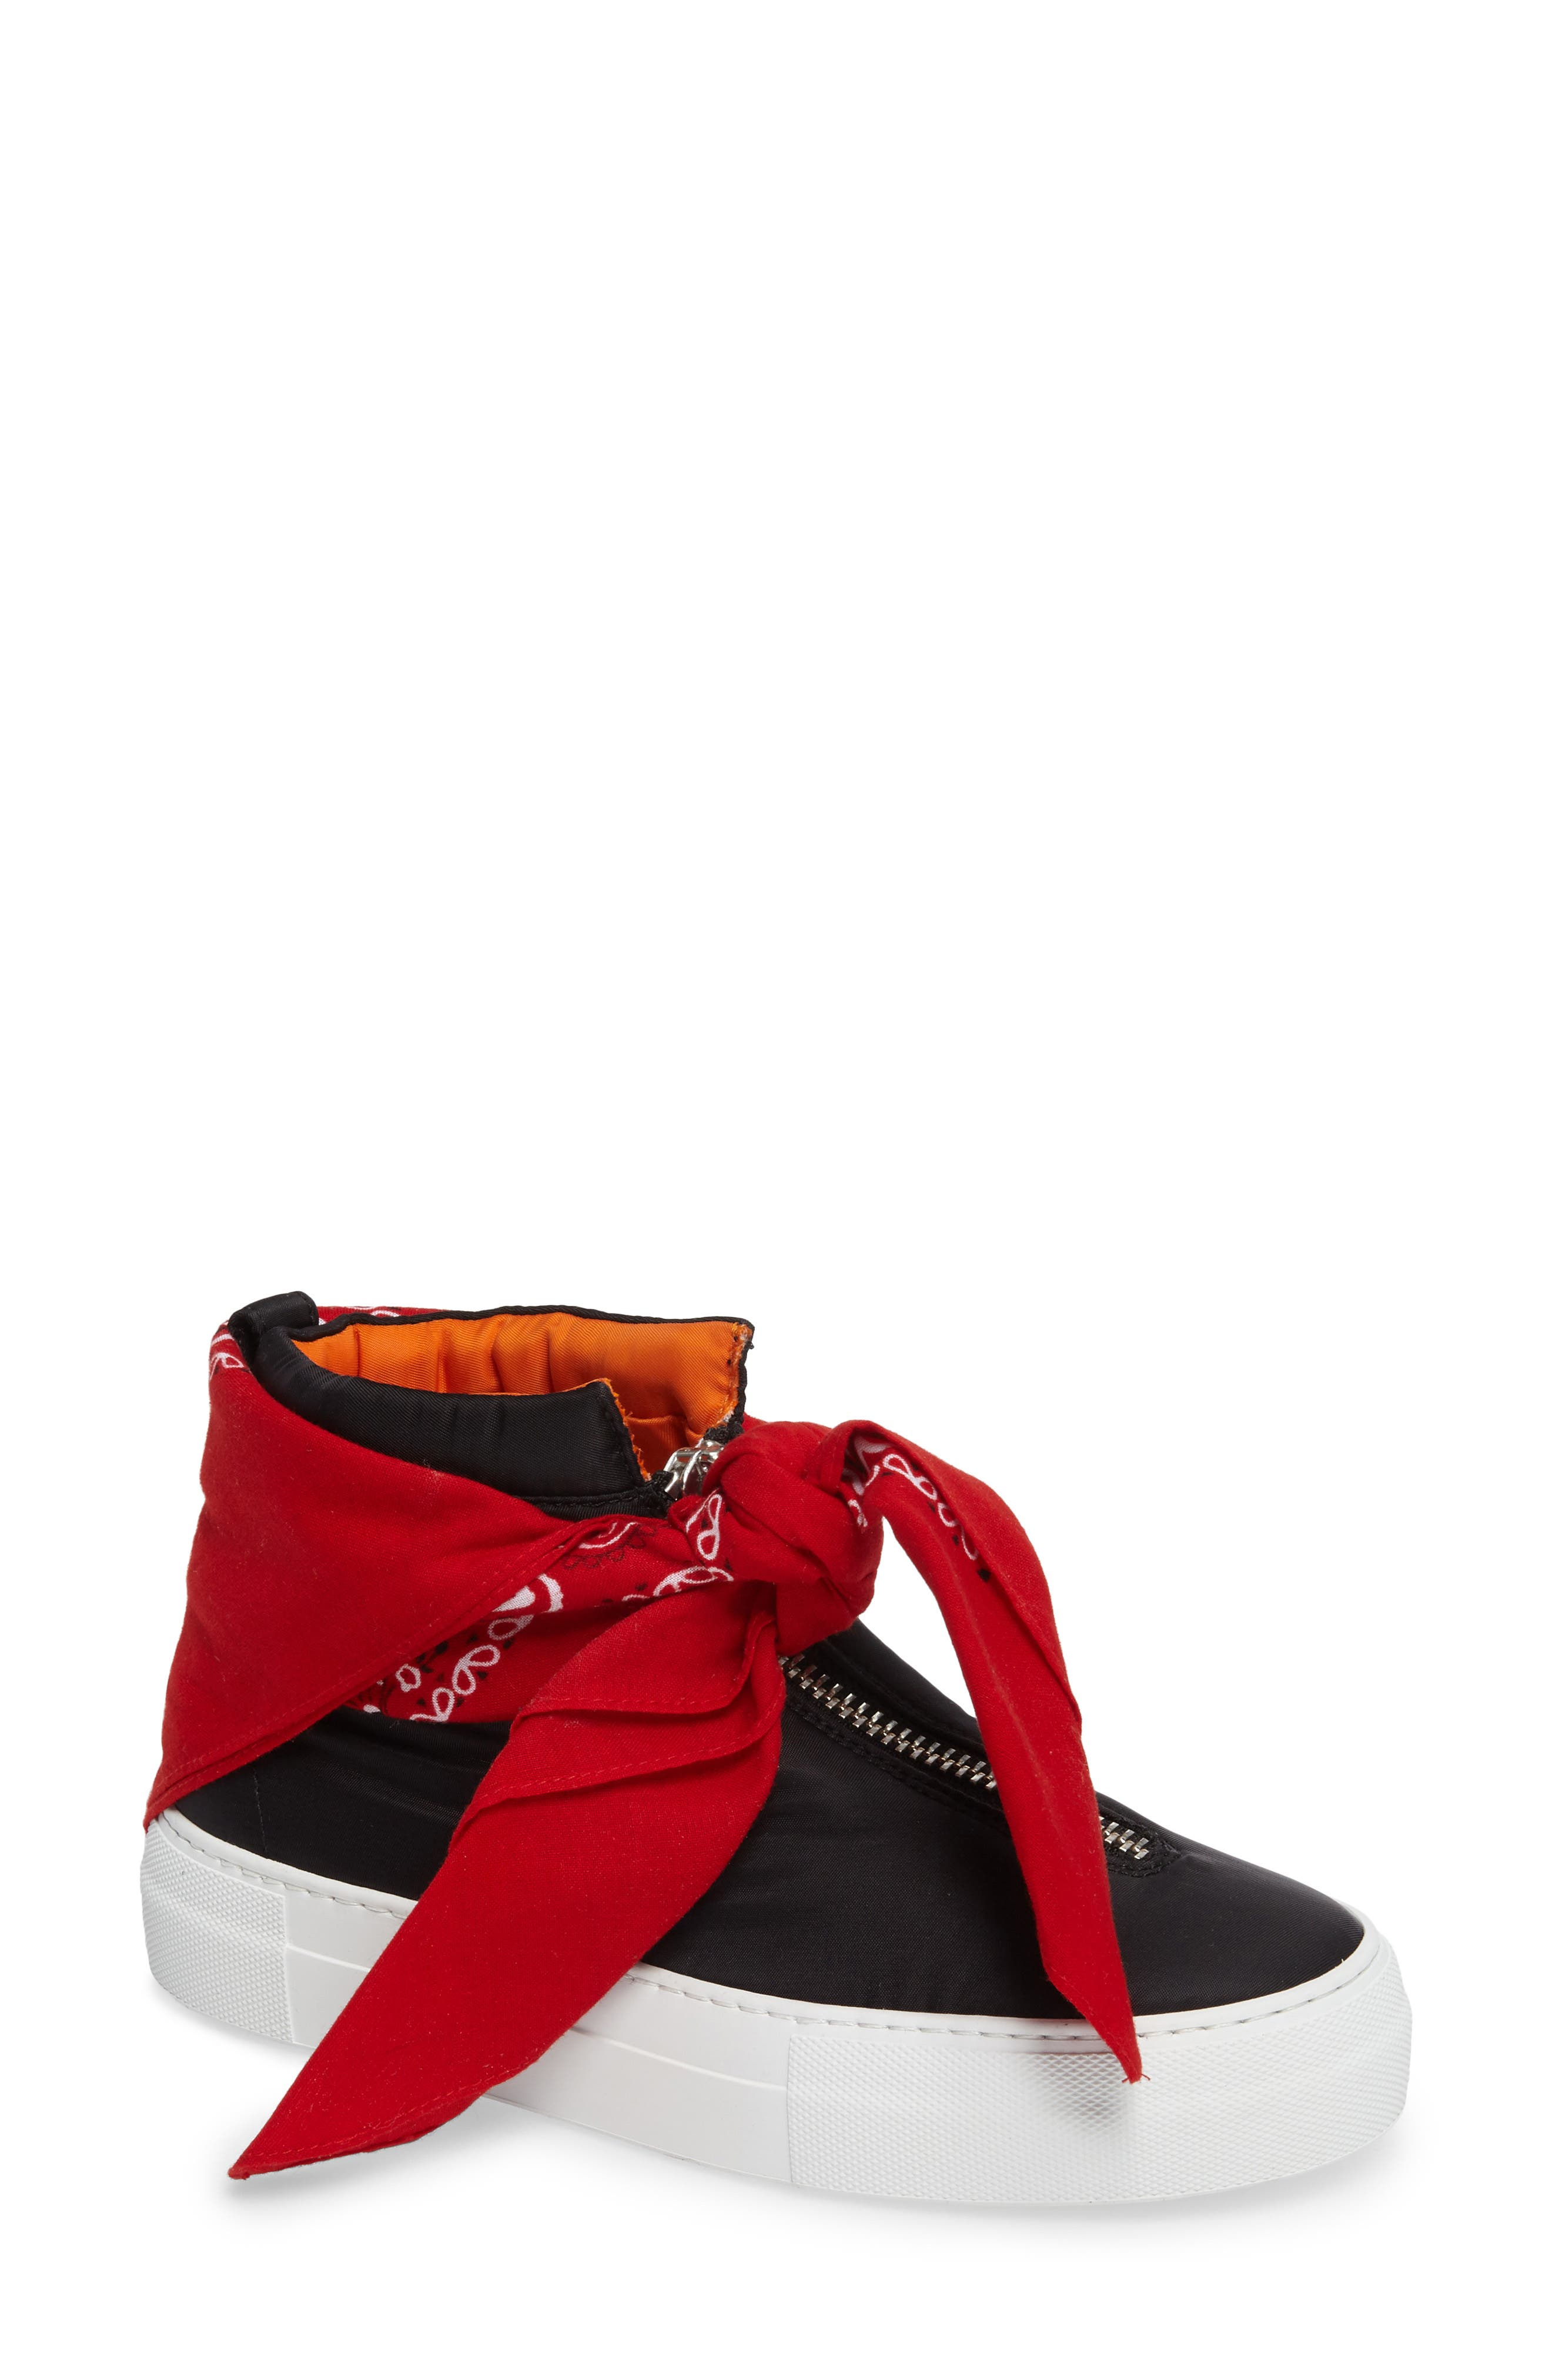 Bandana High Top Sneaker,                         Main,                         color, Black